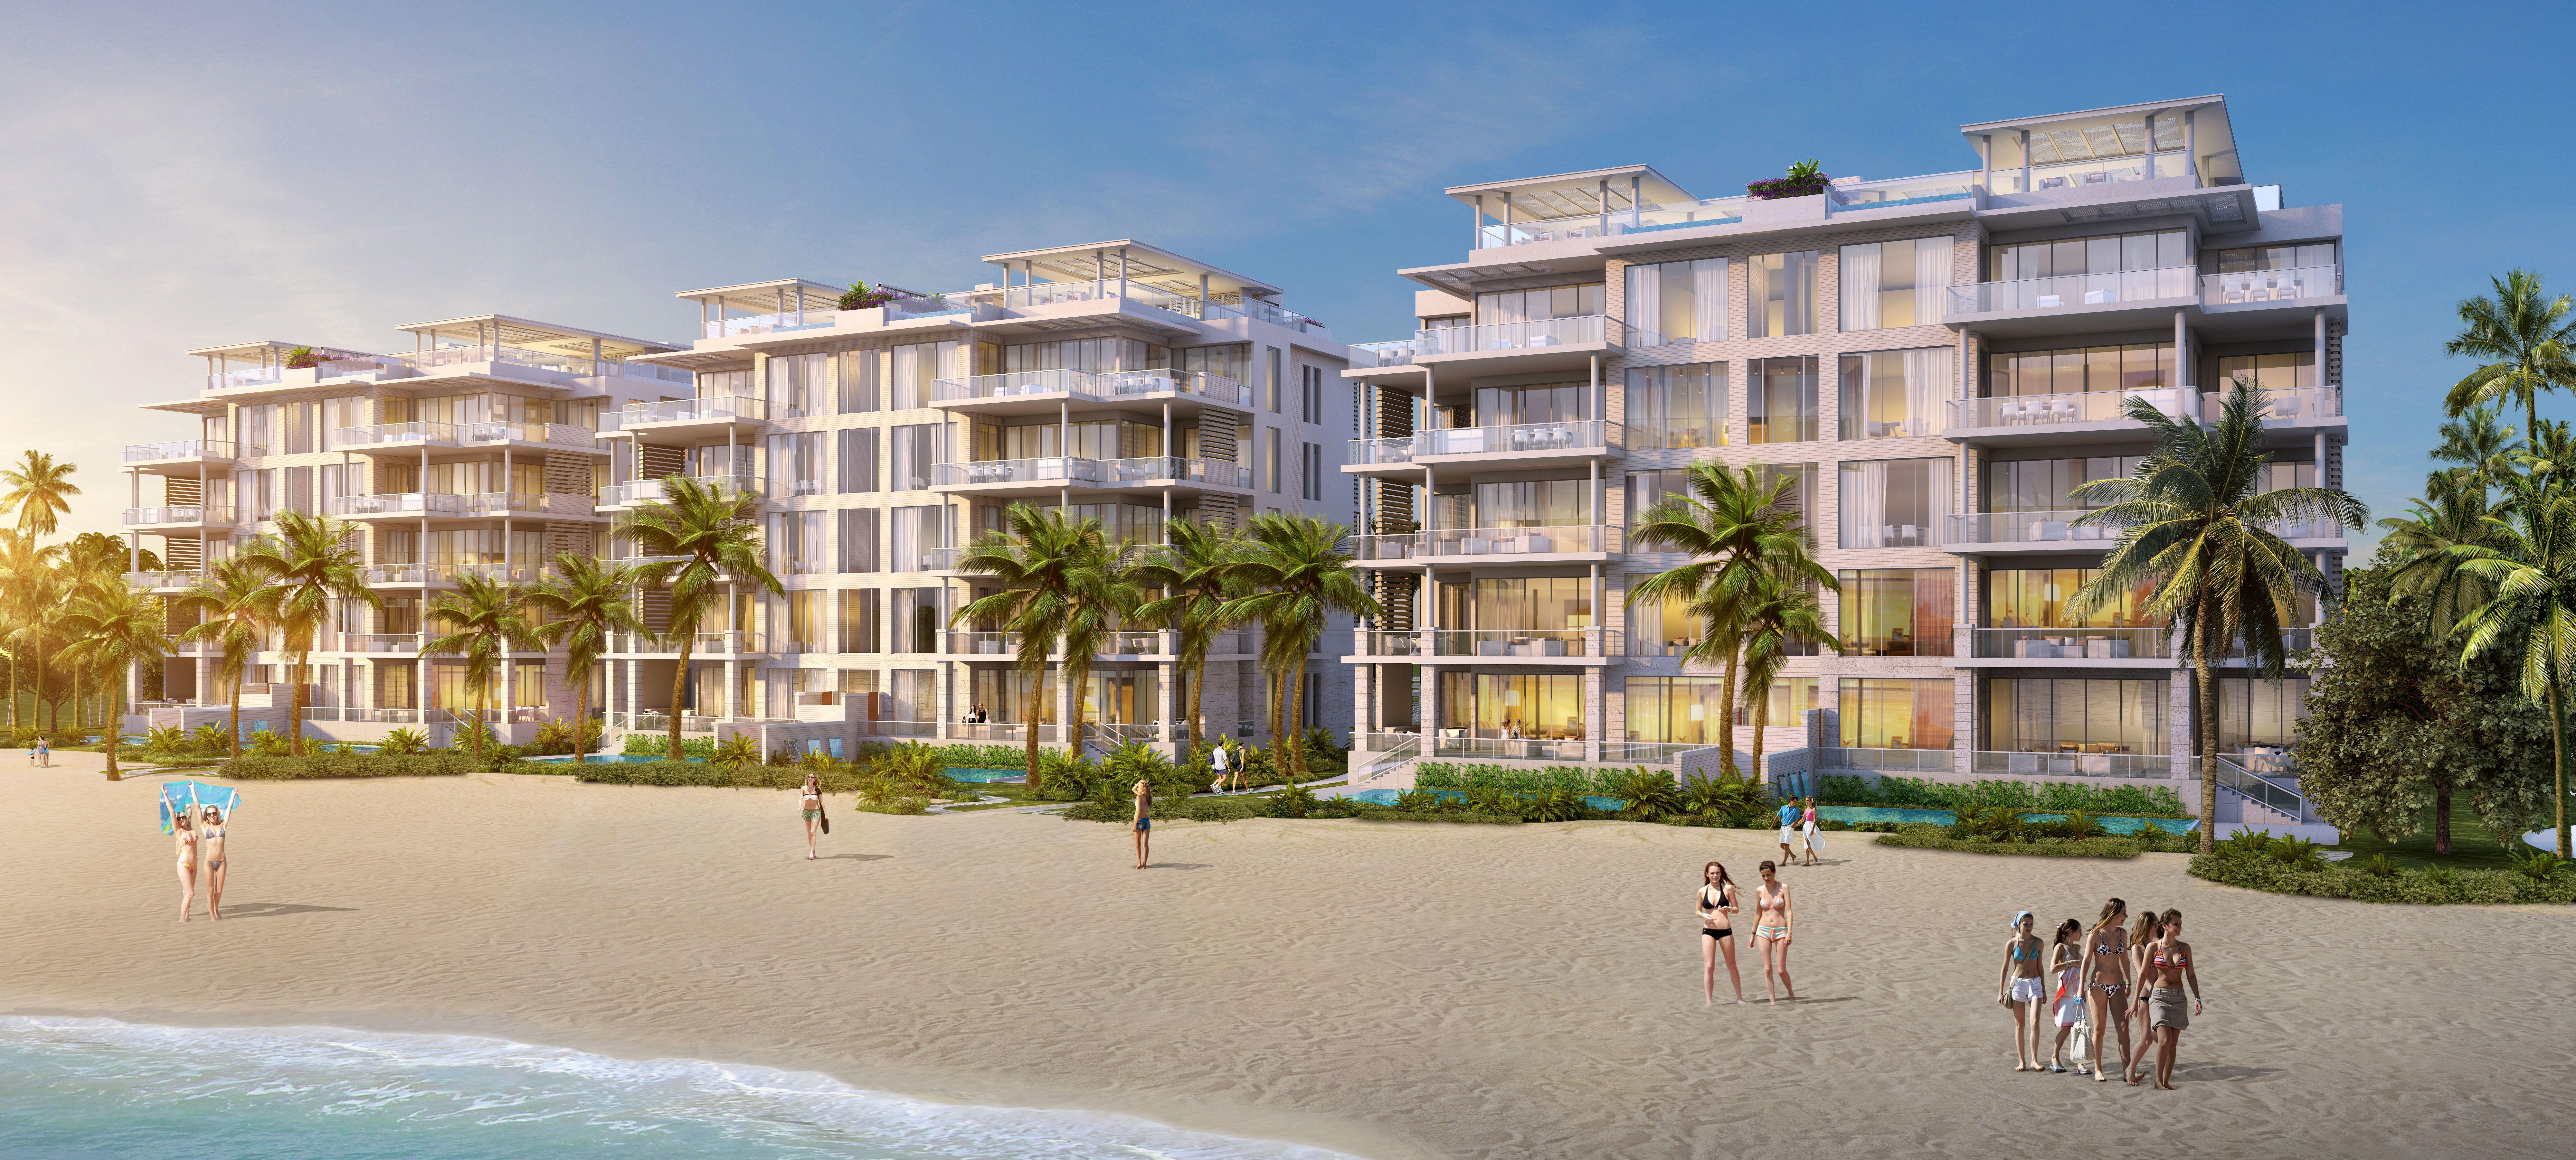 Experience A New Kind Of Luxury Living In The Exclusive Ocean Drive Beachfront Residences In Puerto Rico Ocean Drive Ocean Beach Resorts